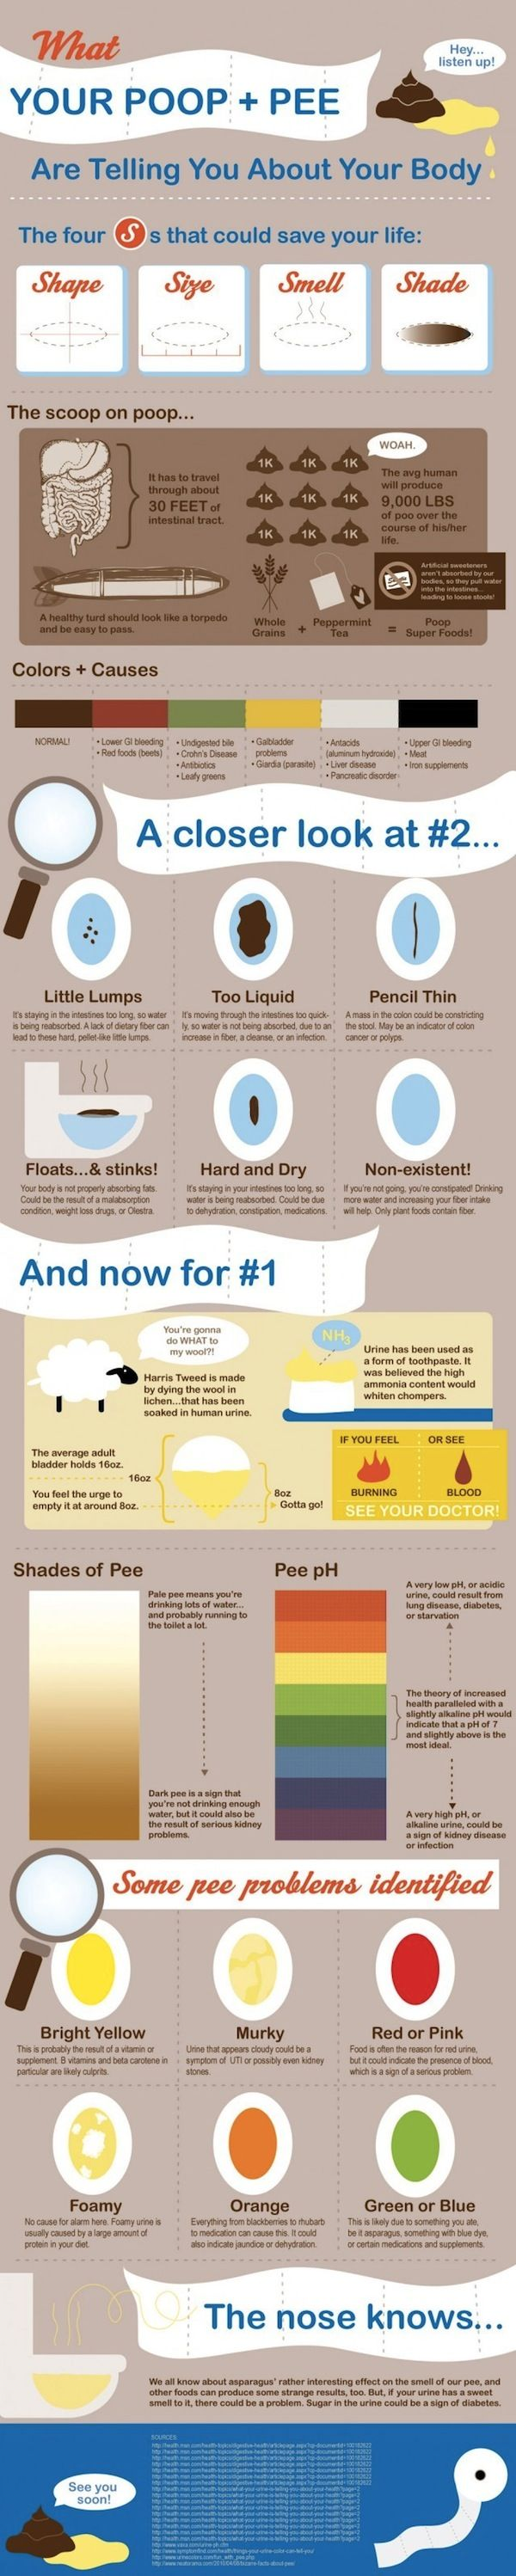 Infographic: What Your Poop Is Telling You - DesignTAXI.com - this is cool! I'll have it in my consultation room one day, and give it to all the moms and dads.